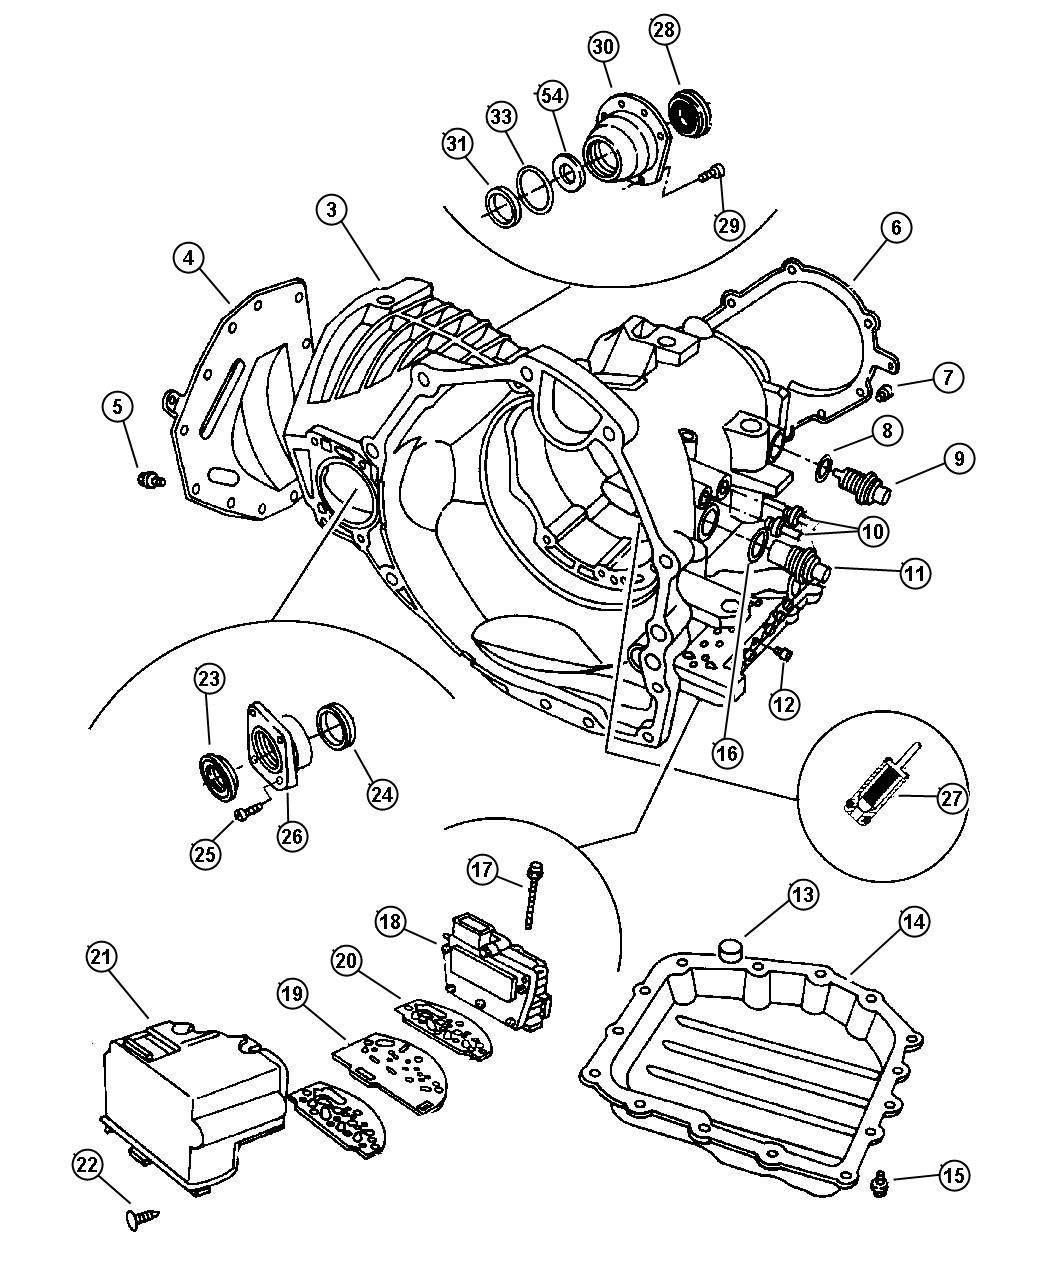 [DIAGRAM] 2004 Chrysler Pacifica Engine Diagram FULL